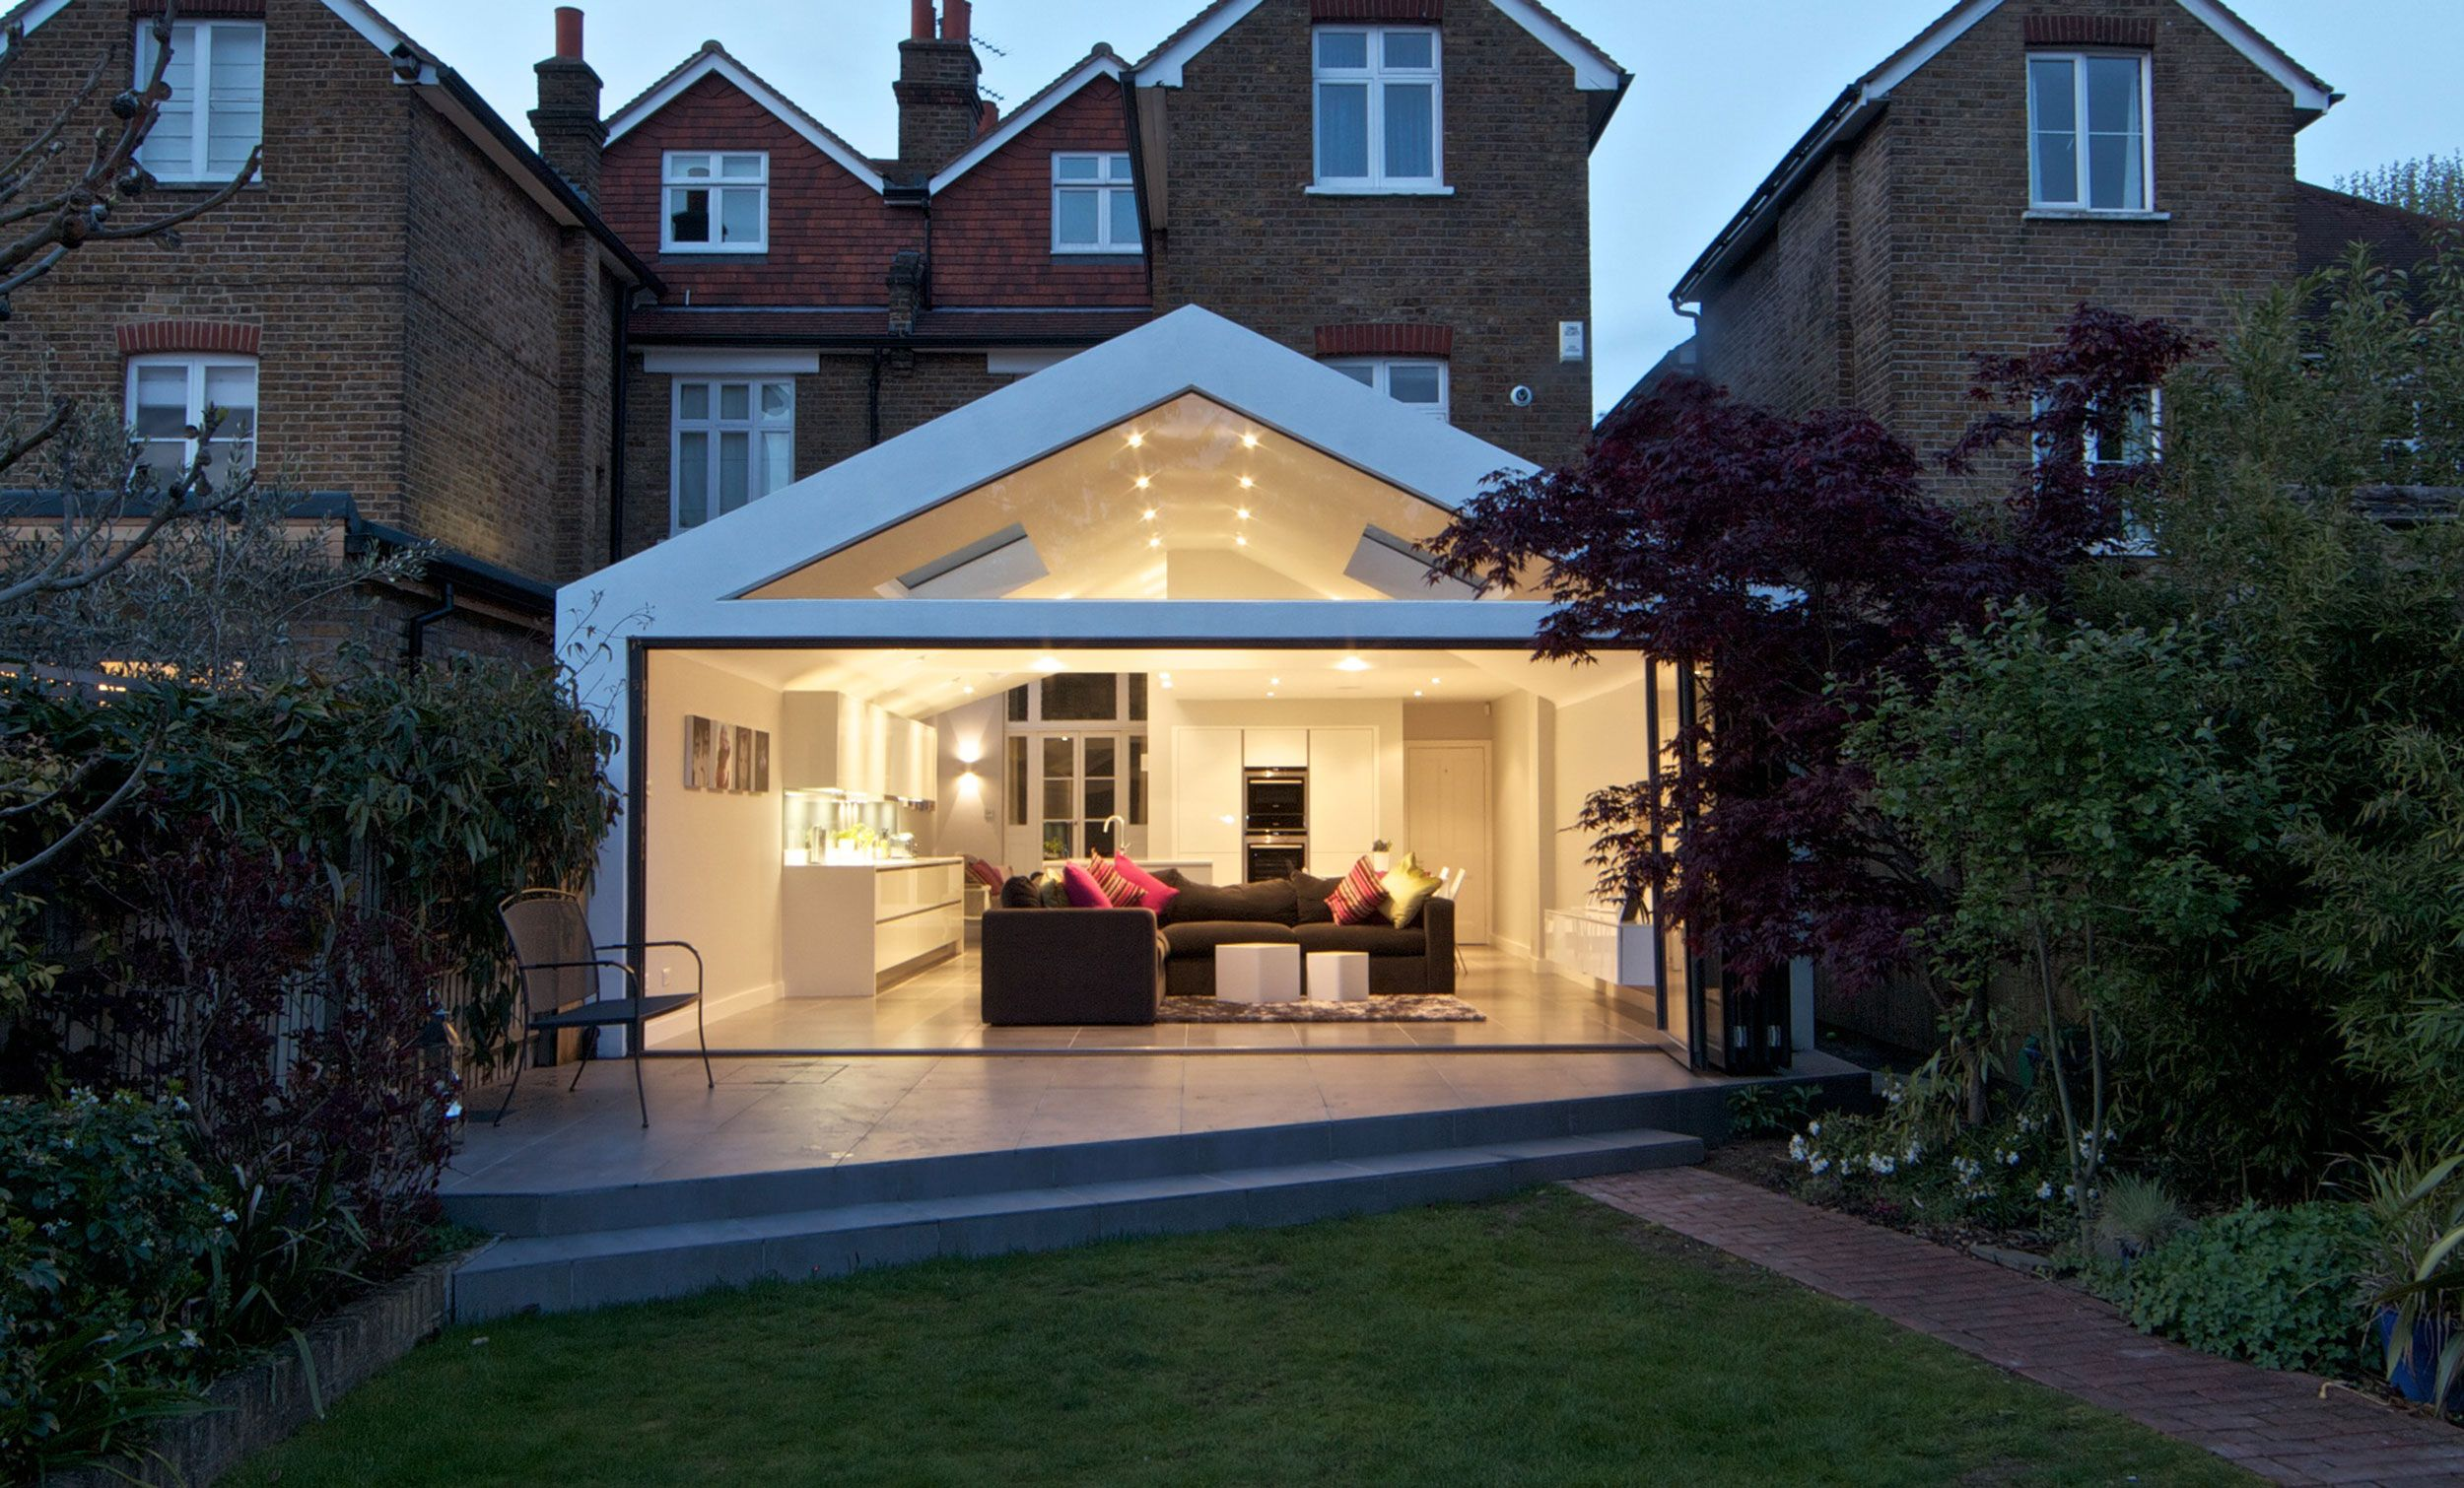 A gable roof extension with a modern twist as the contemporary gable follows the existing contours